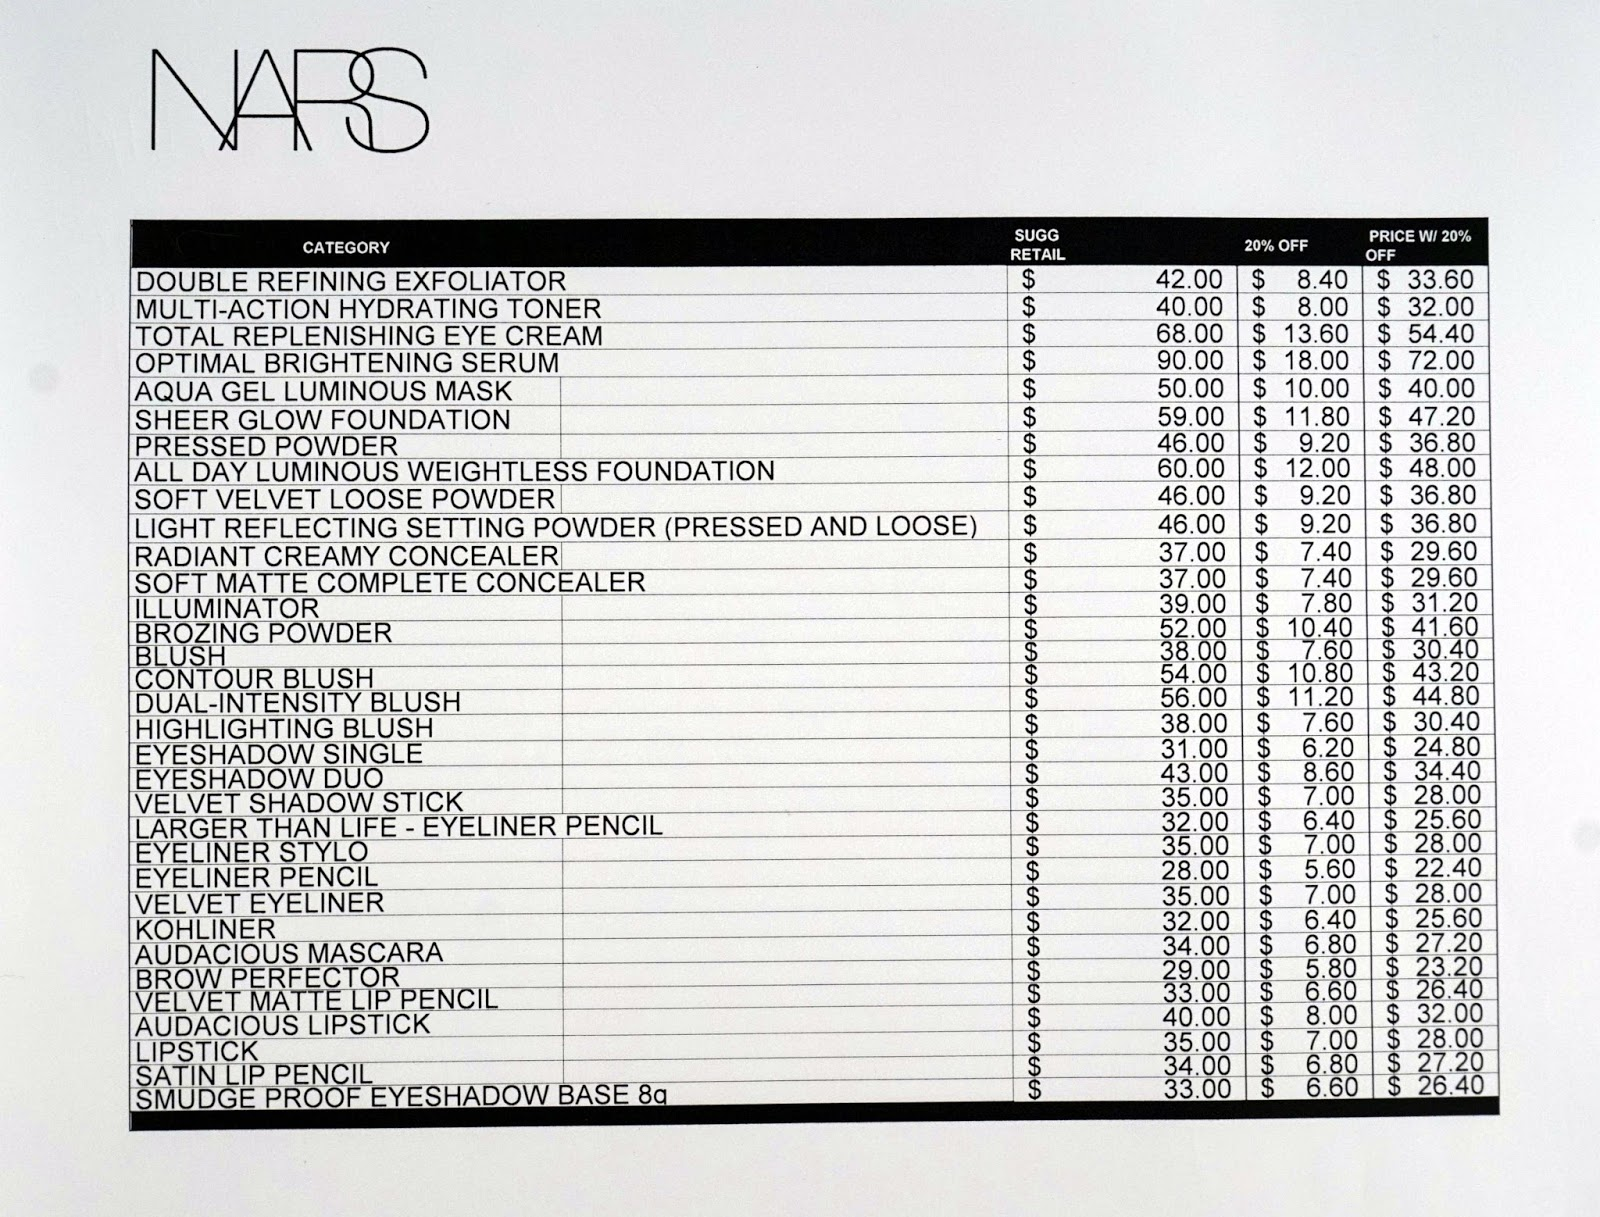 imats toronto prices discount nars